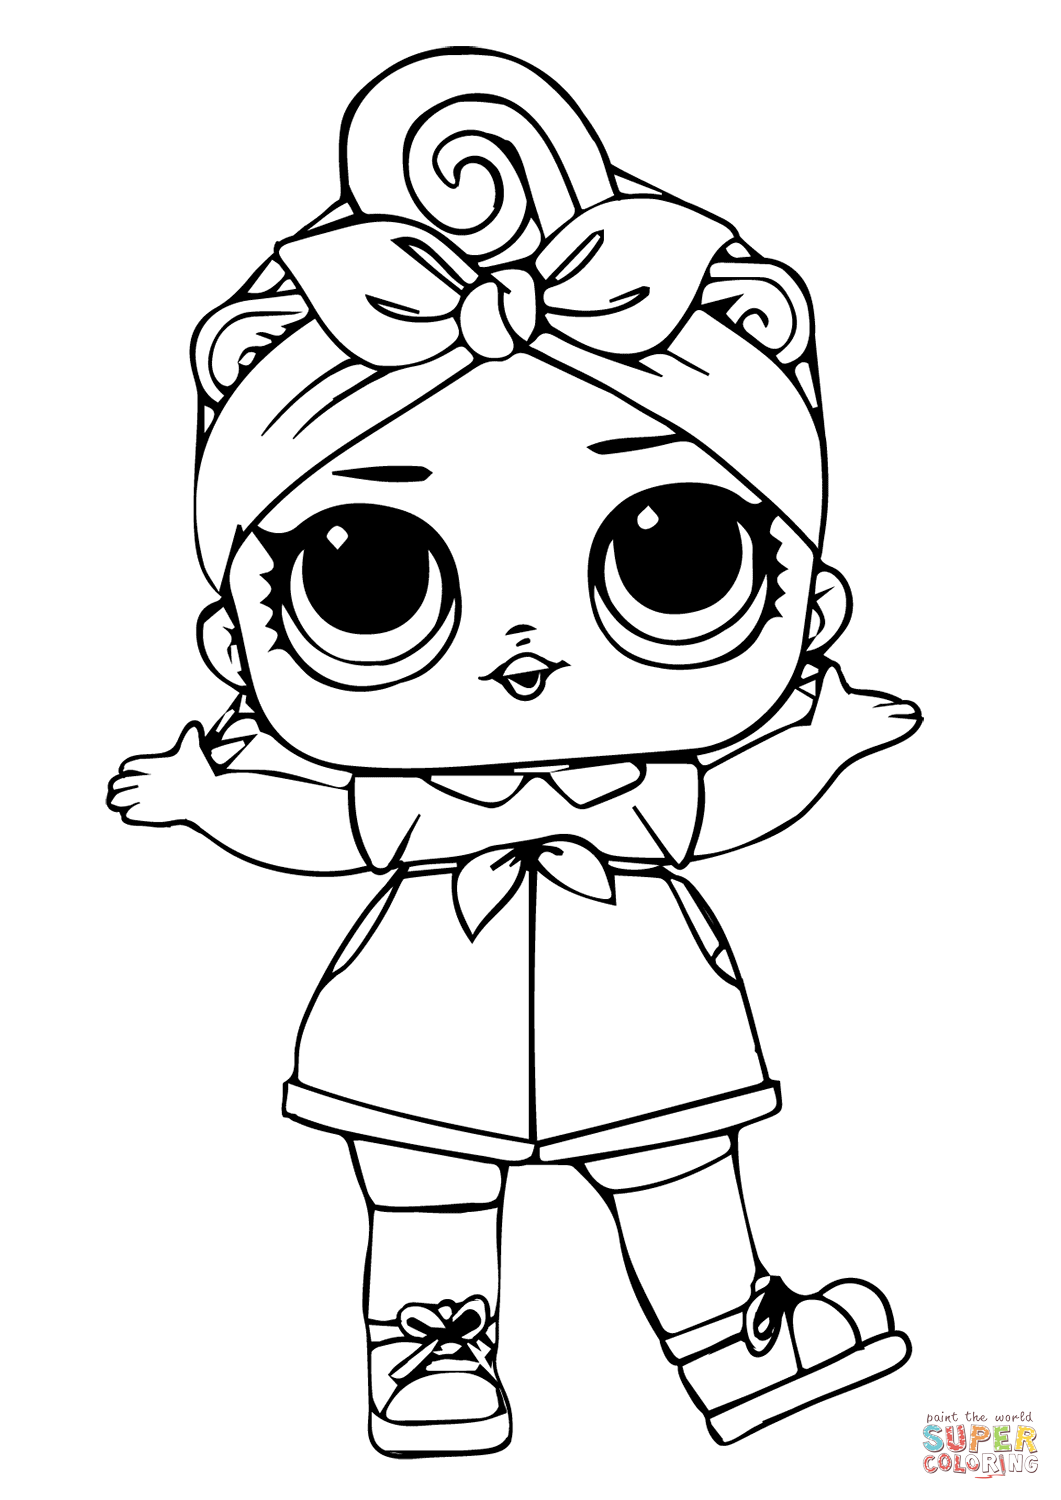 baby doll coloring pages baby dolls coloring pages coloring home coloring baby doll pages